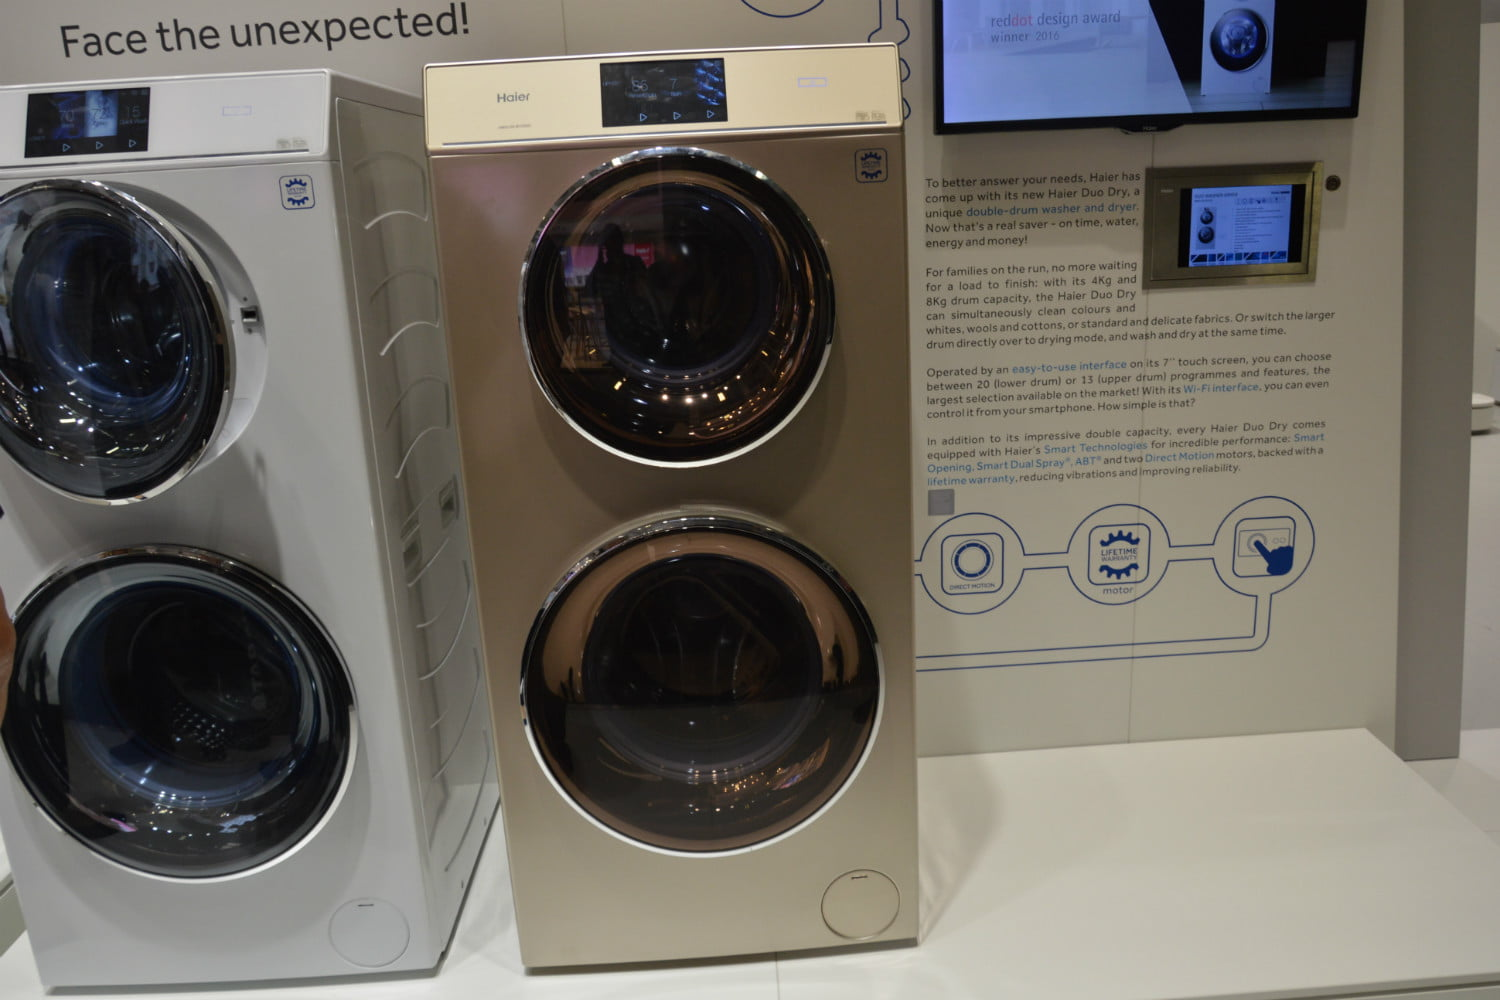 Haiers Duo Dry Is A Washer And WasherDryer Combo In One Digital - Abt washers